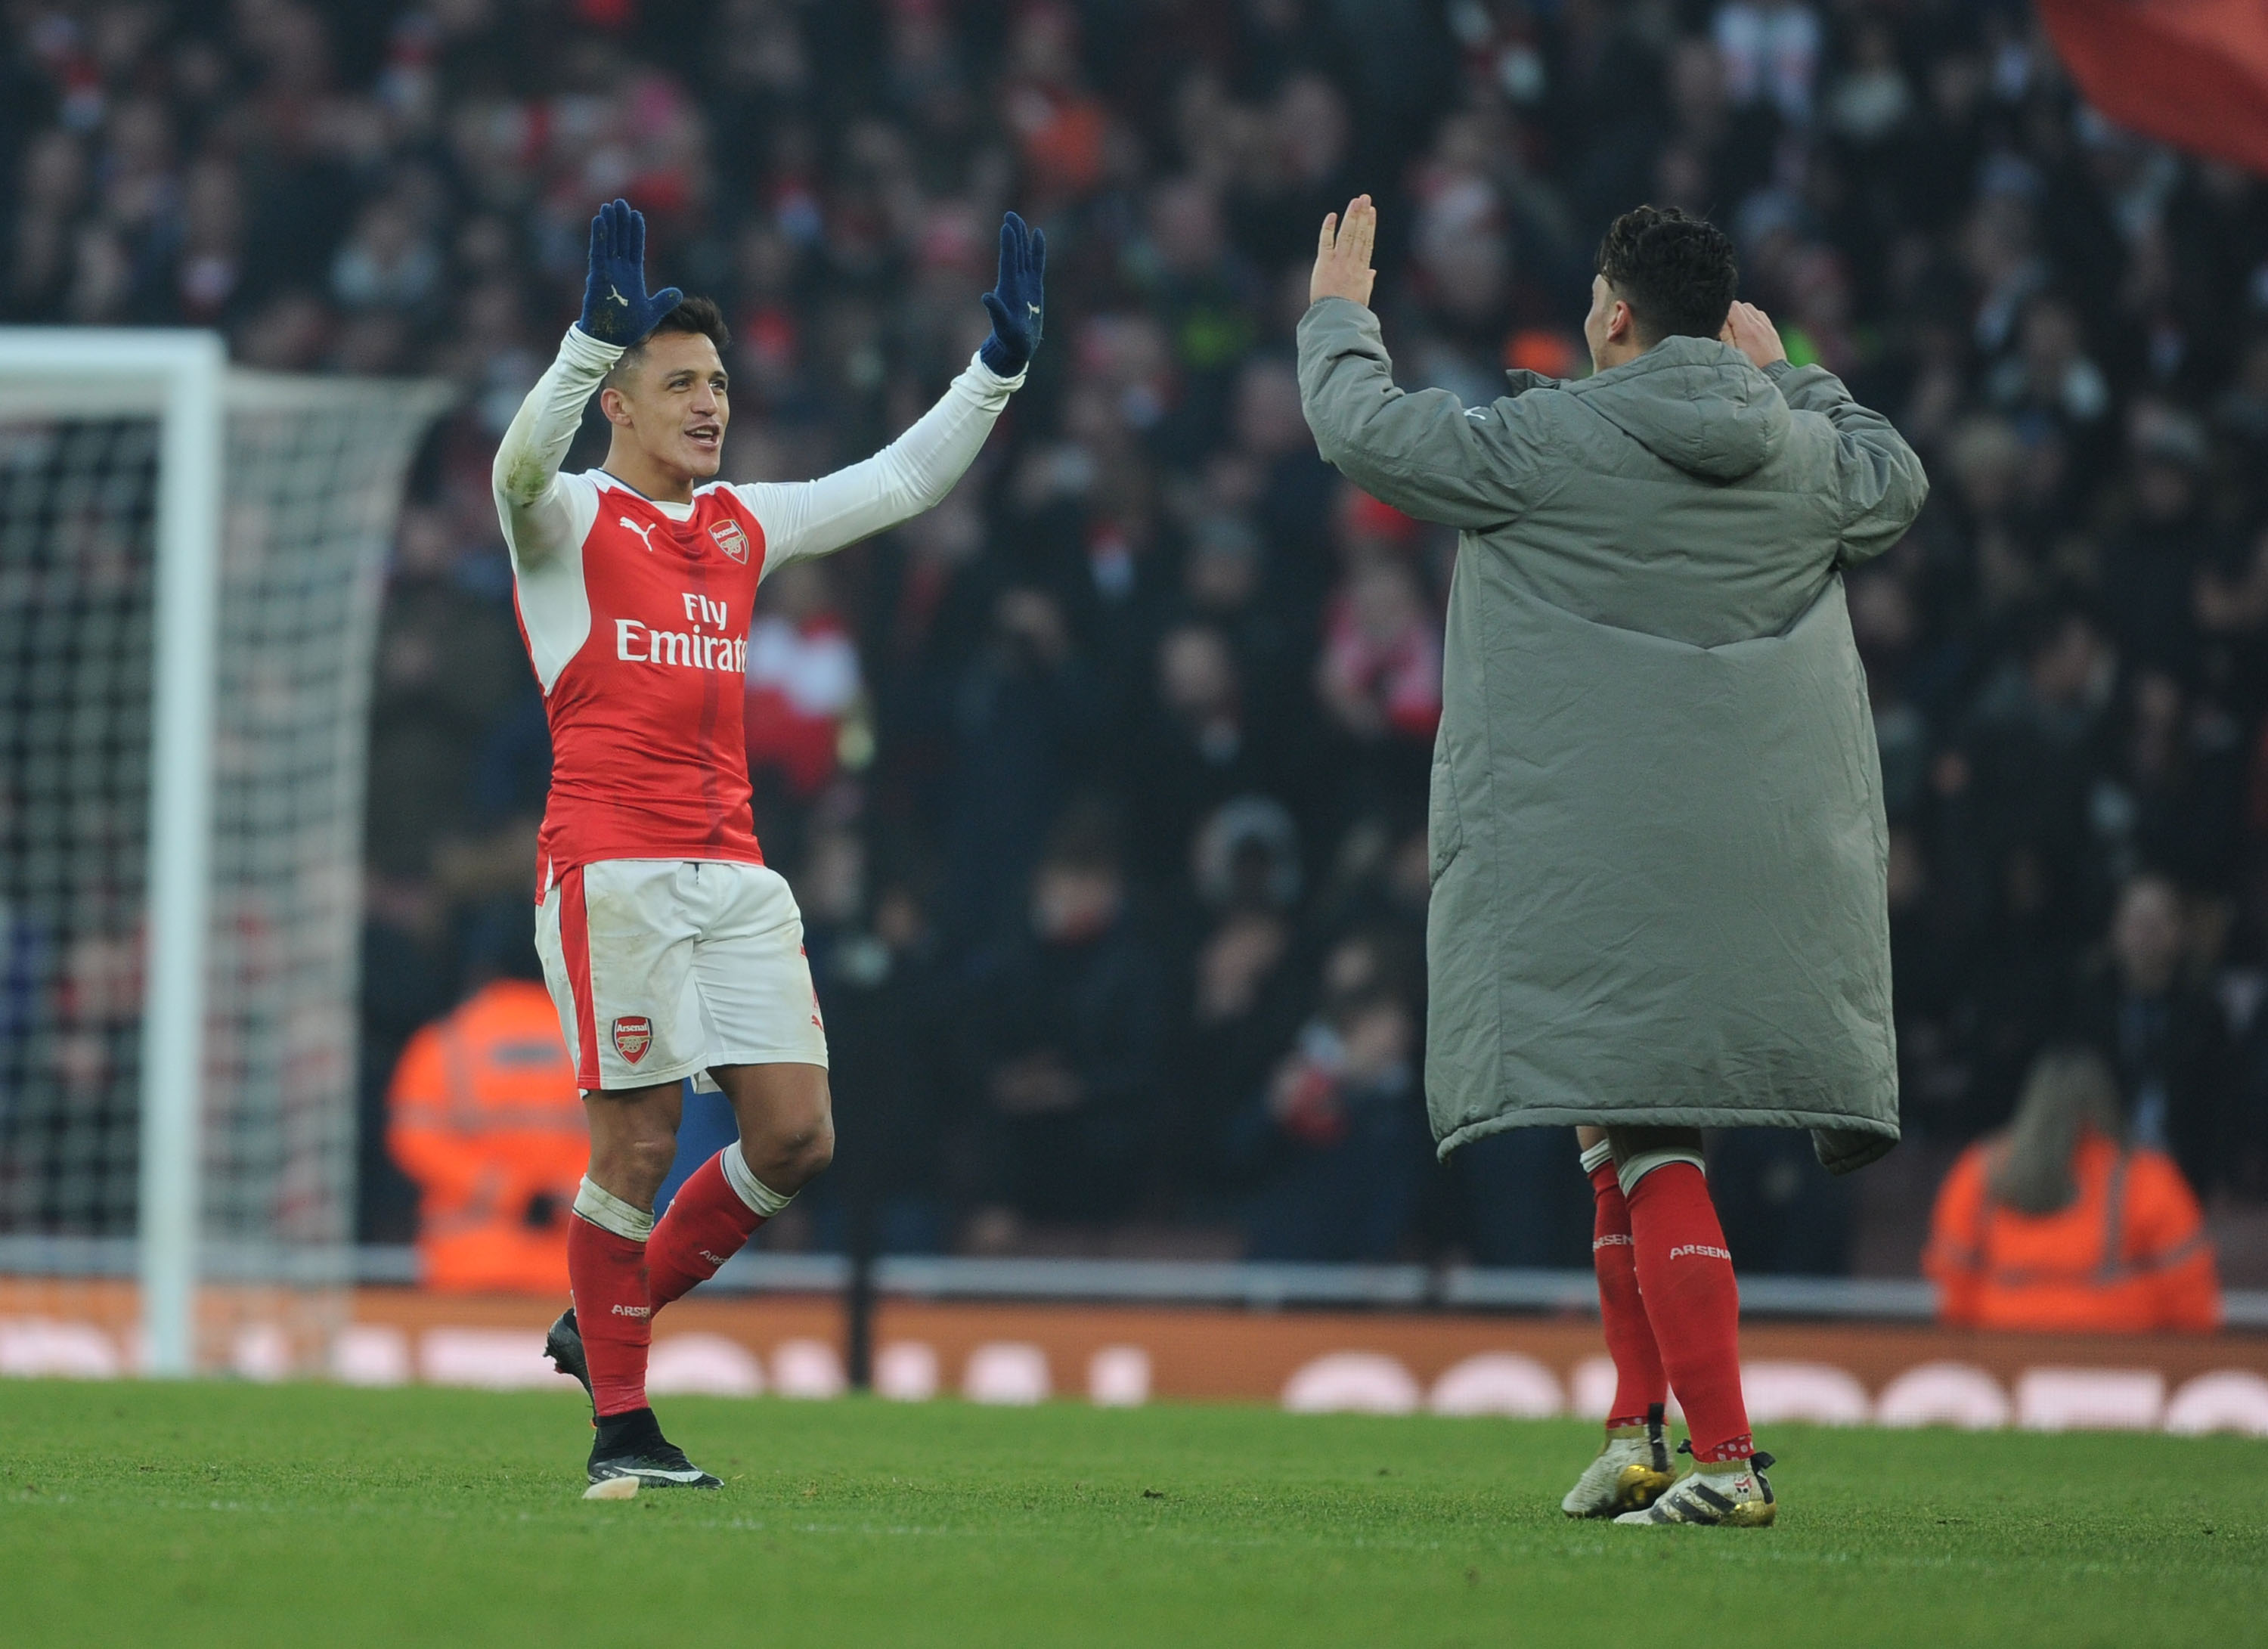 LONDON, ENGLAND - JANUARY 22:  (L-R) Alexis Sanchez and Mesut Ozil celebrates Arsenal's victory after the Premier League match between Arsenal and Burnley at Emirates Stadium on January 22, 2017 in London, England.  (Photo by Stuart MacFarlane/Arsenal FC via Getty Images)